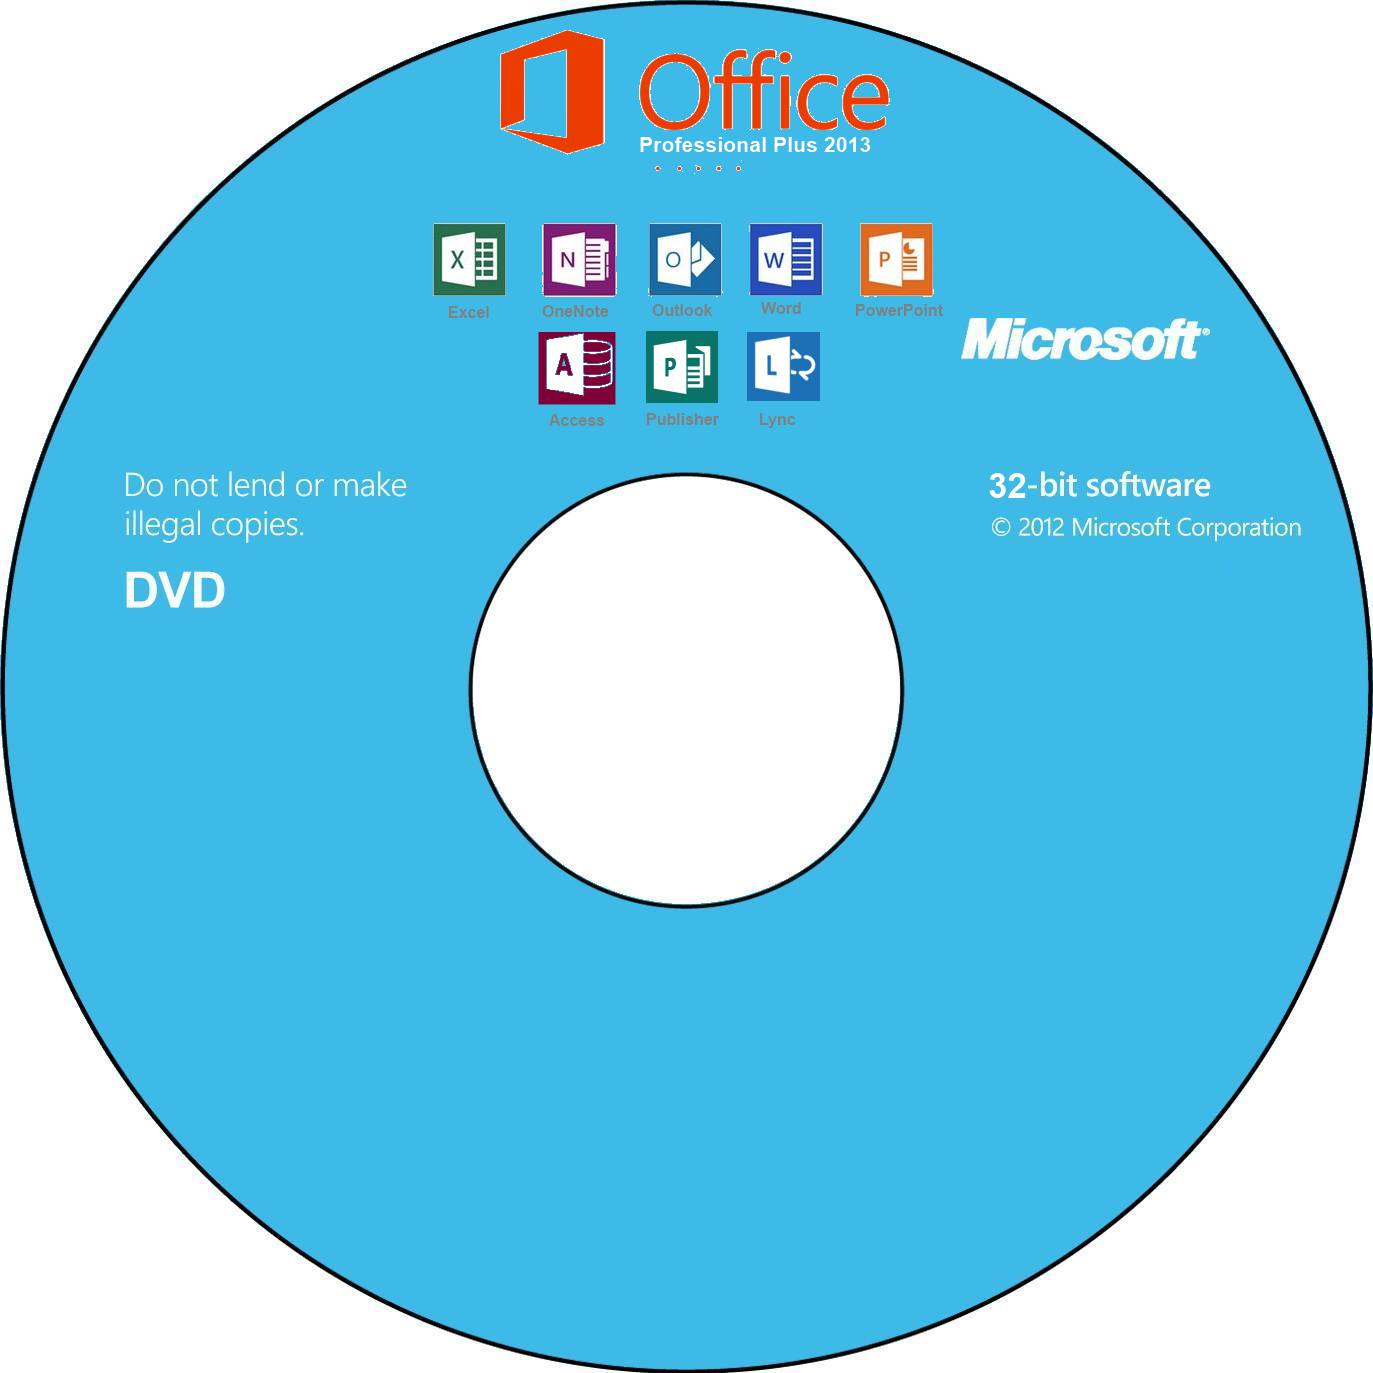 Microsoft Office 2013 Professional Plus Solved Office 2013 Icons Images Cd Dvd Disk Up Running